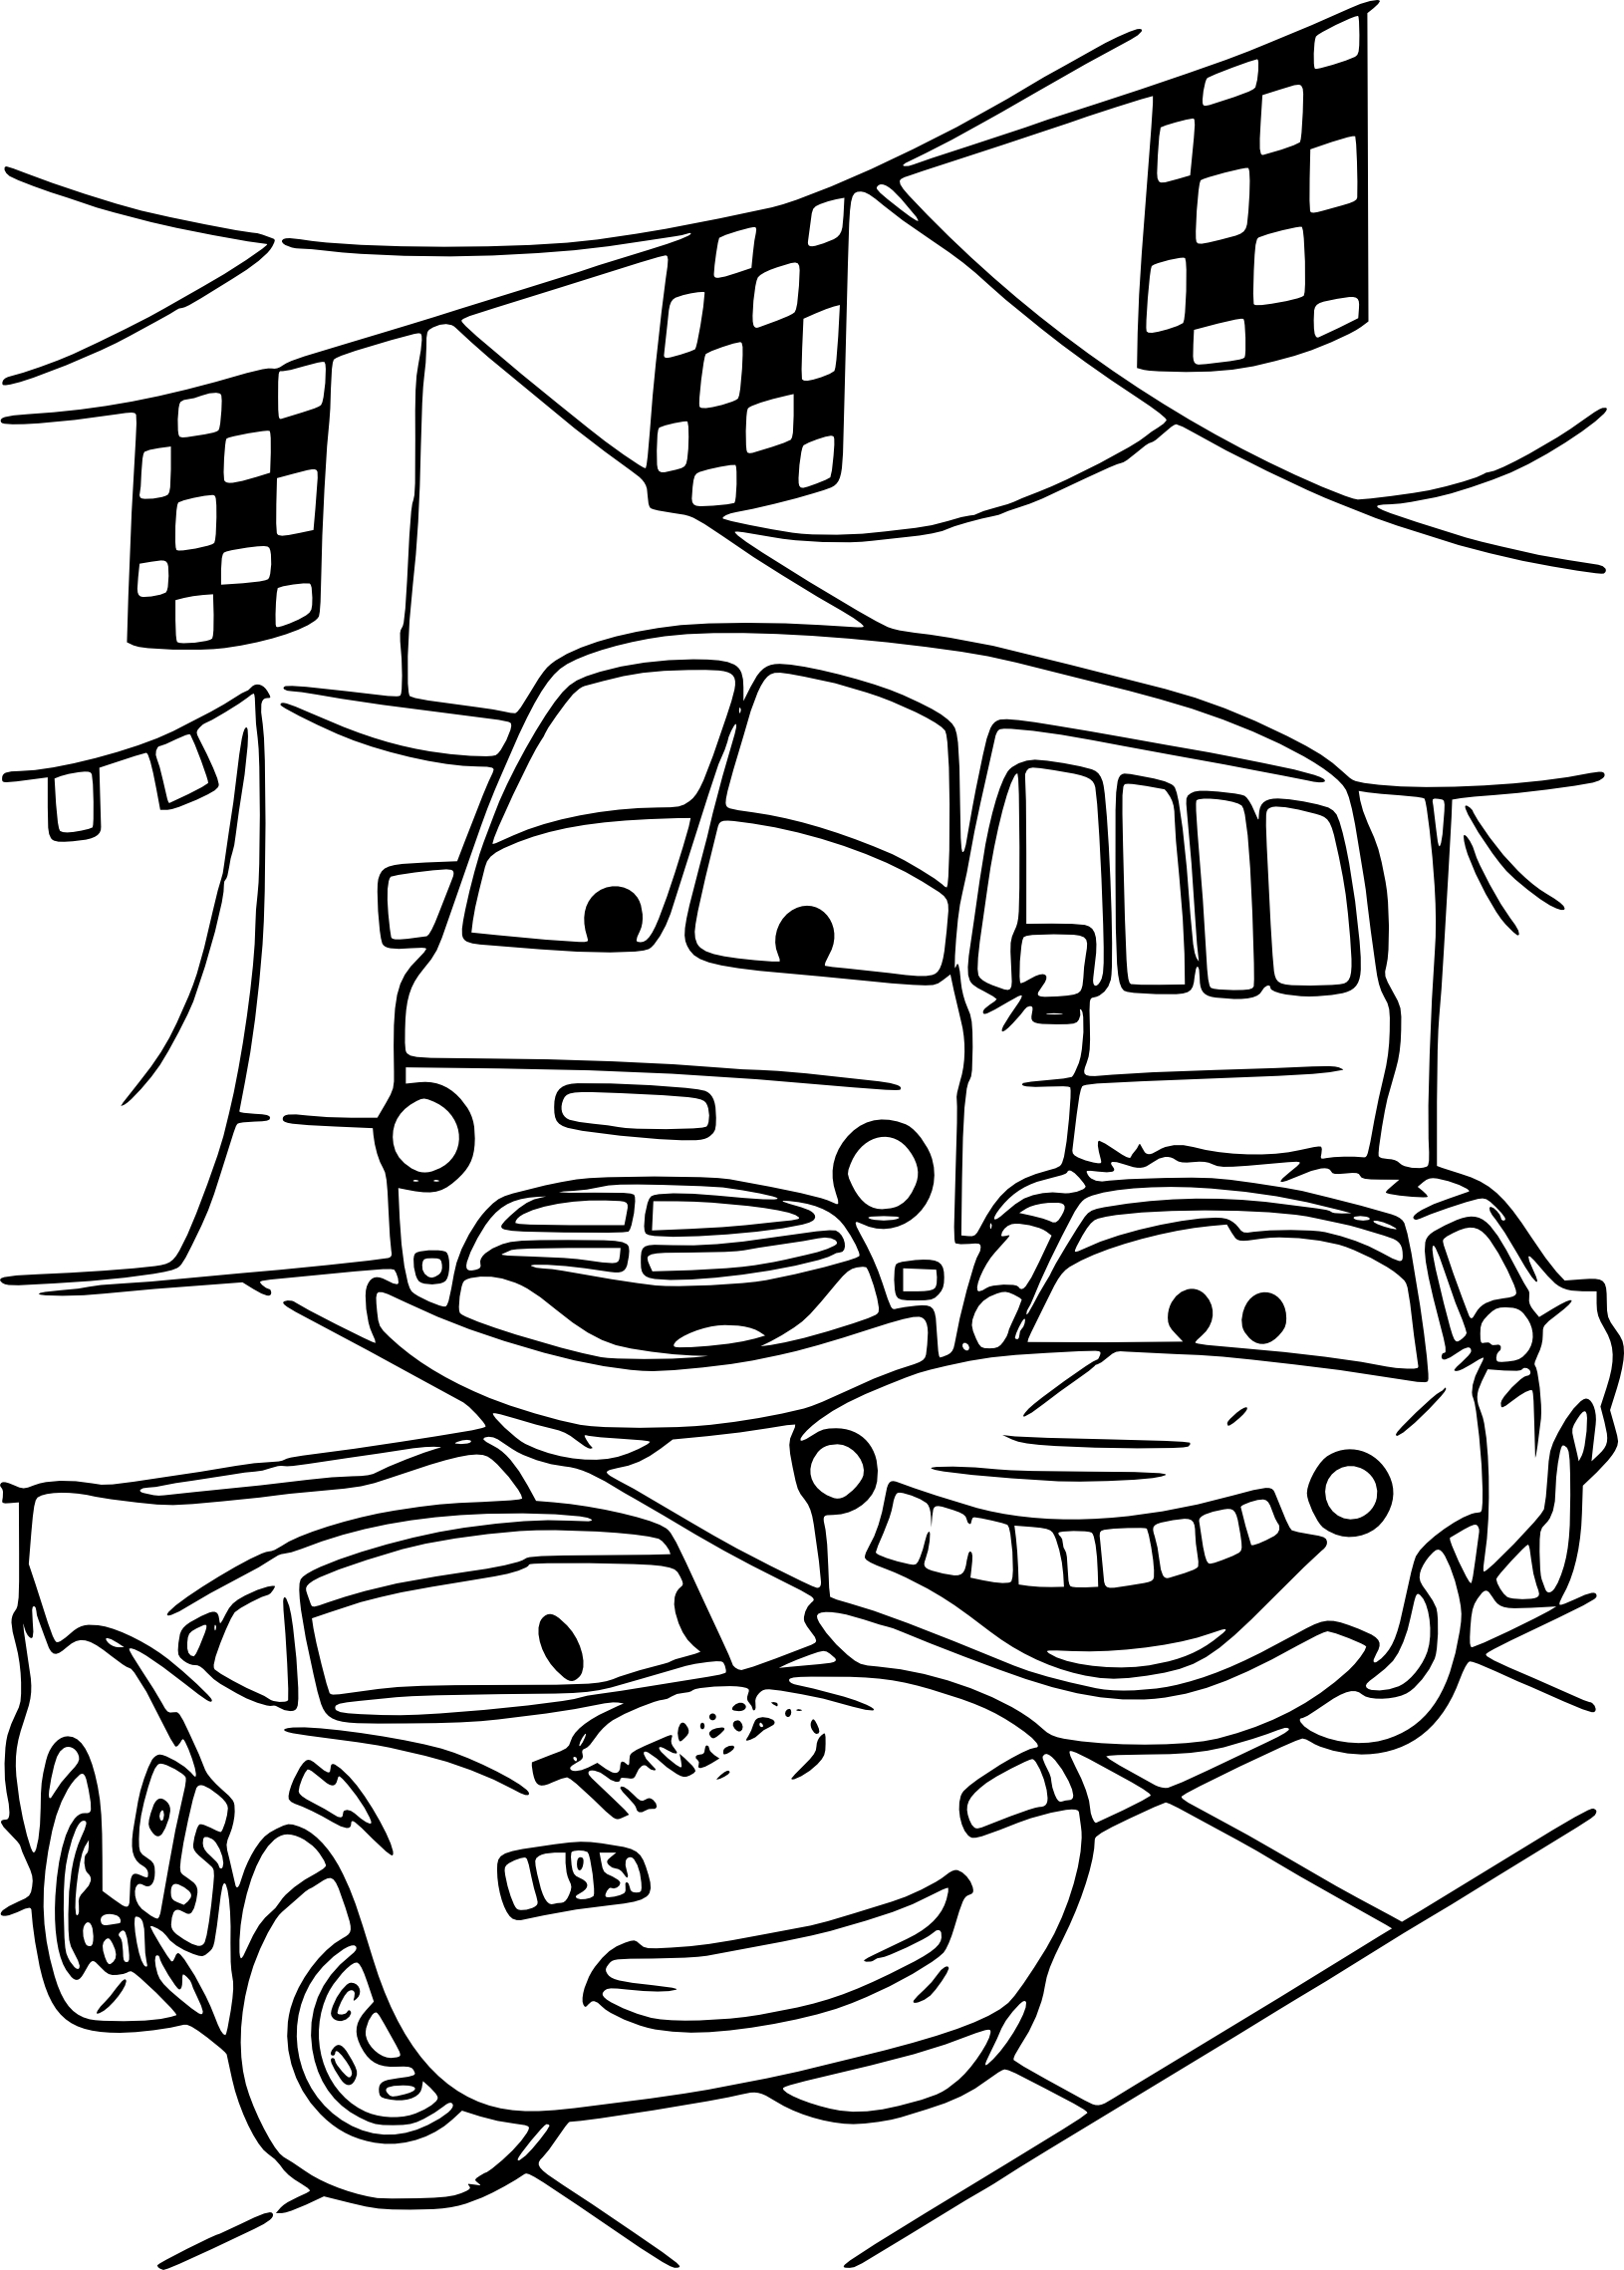 Cars coloriage disney cars imprimer - Coloriage cars a imprimer a4 ...